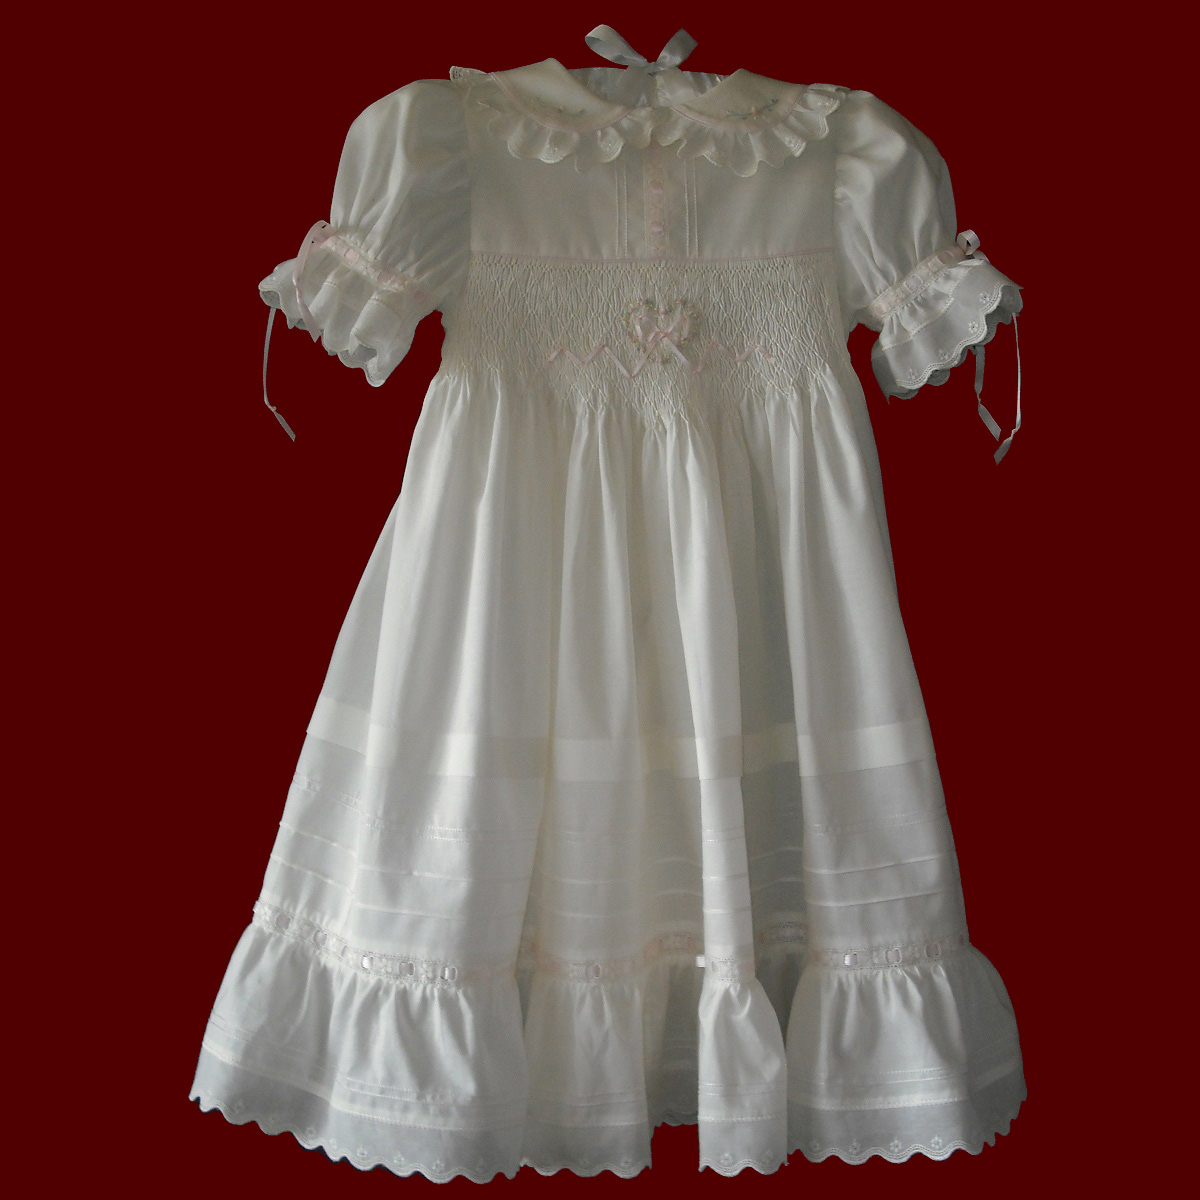 Thank you for shopping Children's Cottage for all of your children's clothing needs. You'll find dresses and outfits for all occasions including birthday clothing and outfits, birthday hats, custom Mickey and Minnie Mouse and princesses outfits, smocked dresses and outfits, heirloom dresses & outfits for flower girls, ring bearers, Christenings, portraits, first communions, Easter and other.